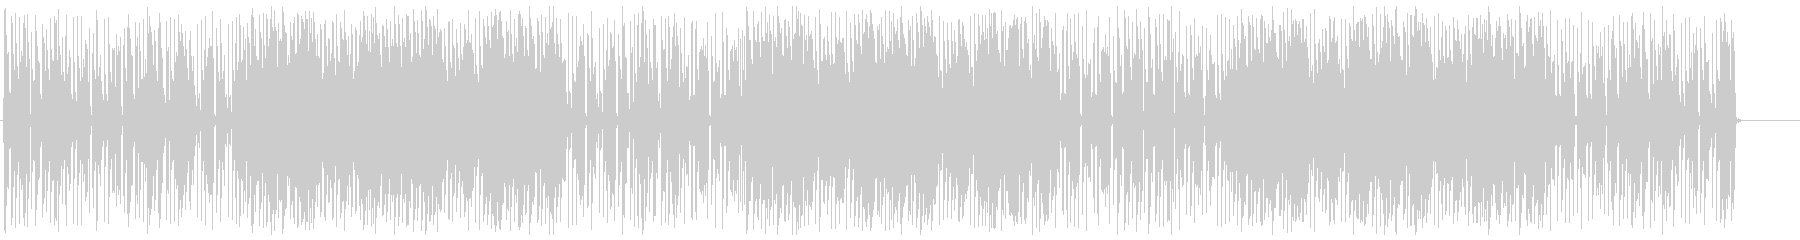 Pop and cute techno's unreproduced waveform